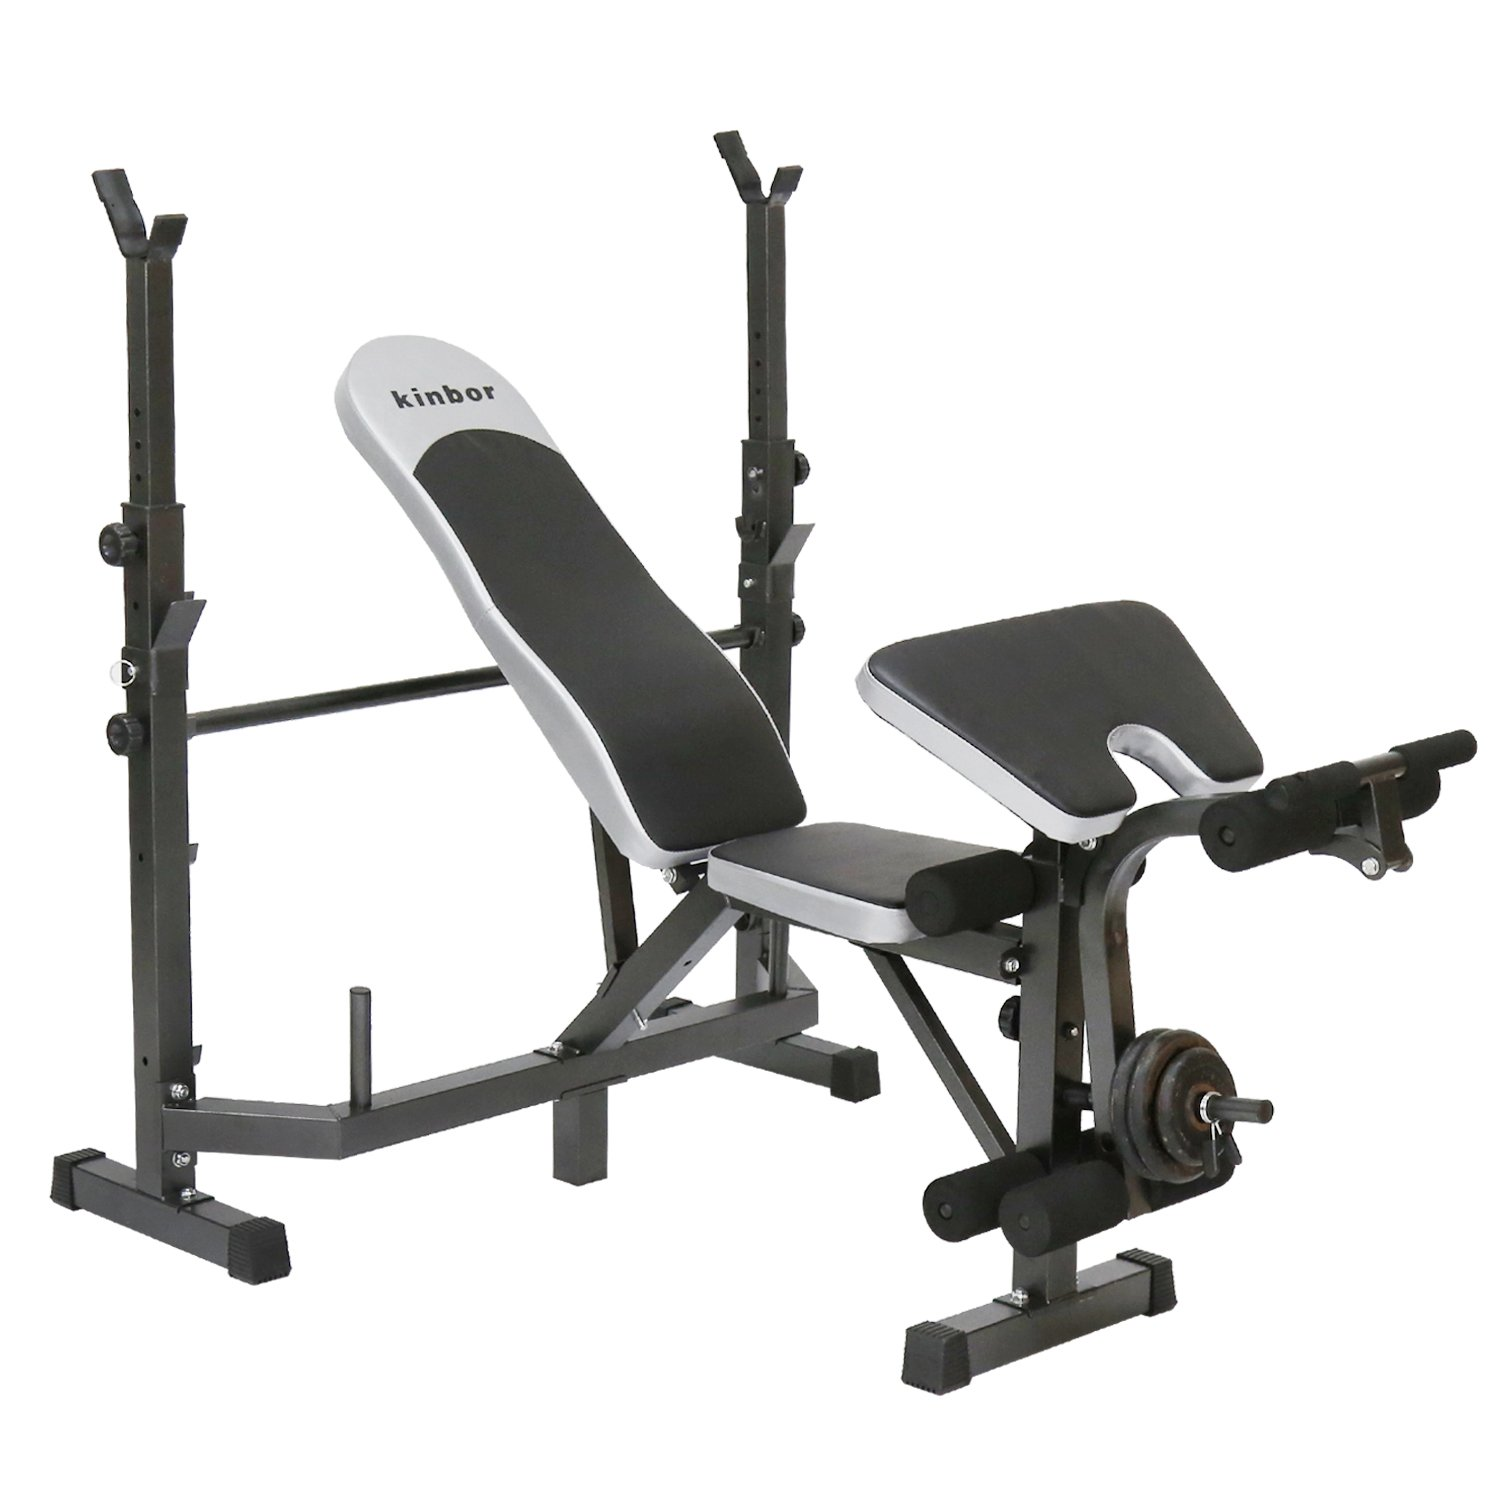 Peach Tree Multi-station Weight Bench Adjustable Workout Bench with Leg Extension Incline Flat Decline Sit Up Fitness Equipment for Gym or Home Exercise by Peachtree Press Inc